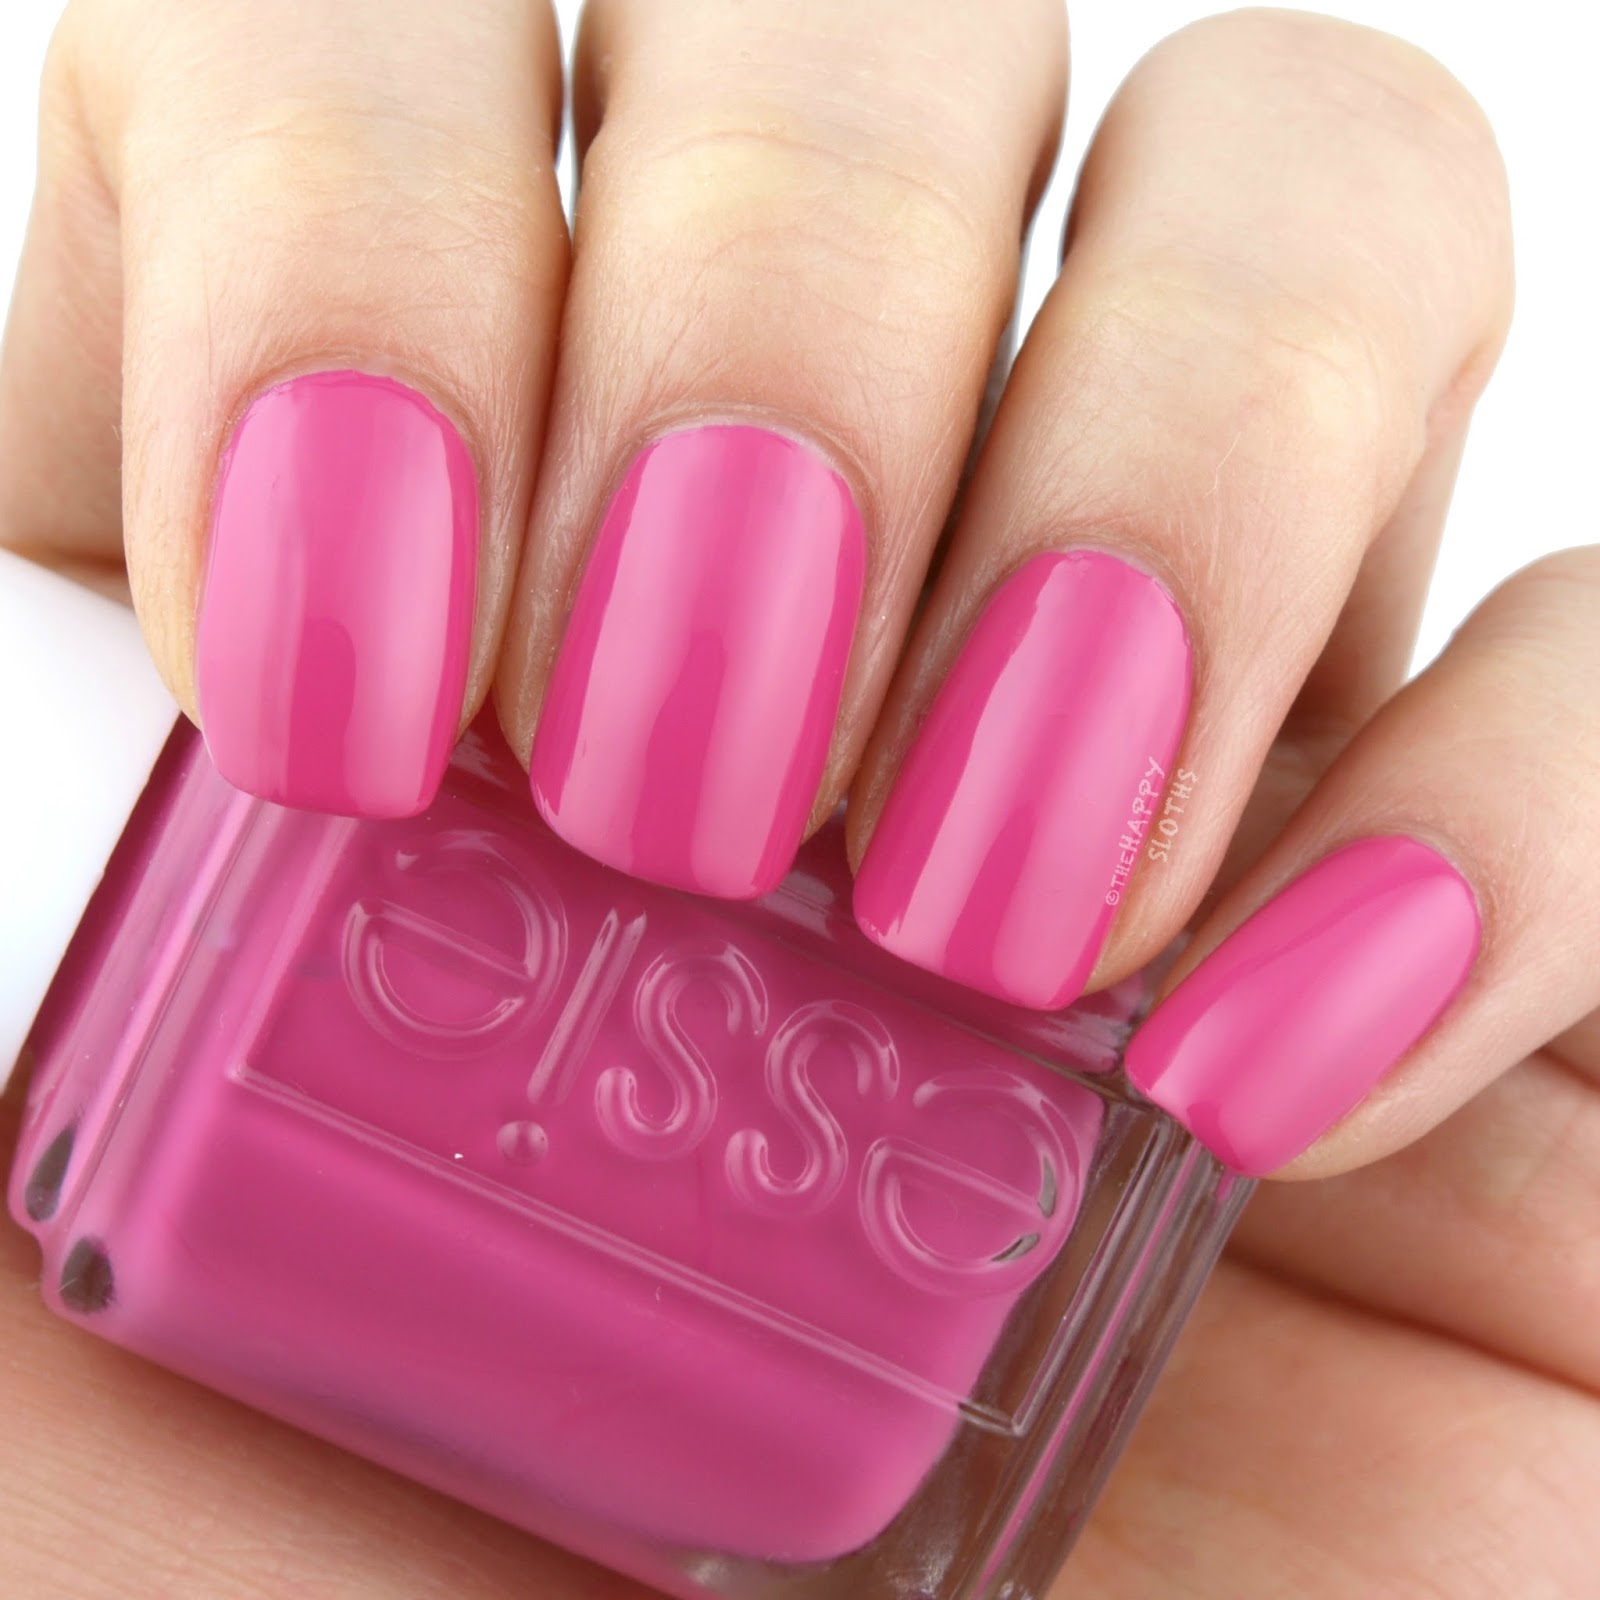 Essie Summer 2018 | Fuchsia is Bright: Review and Swatches